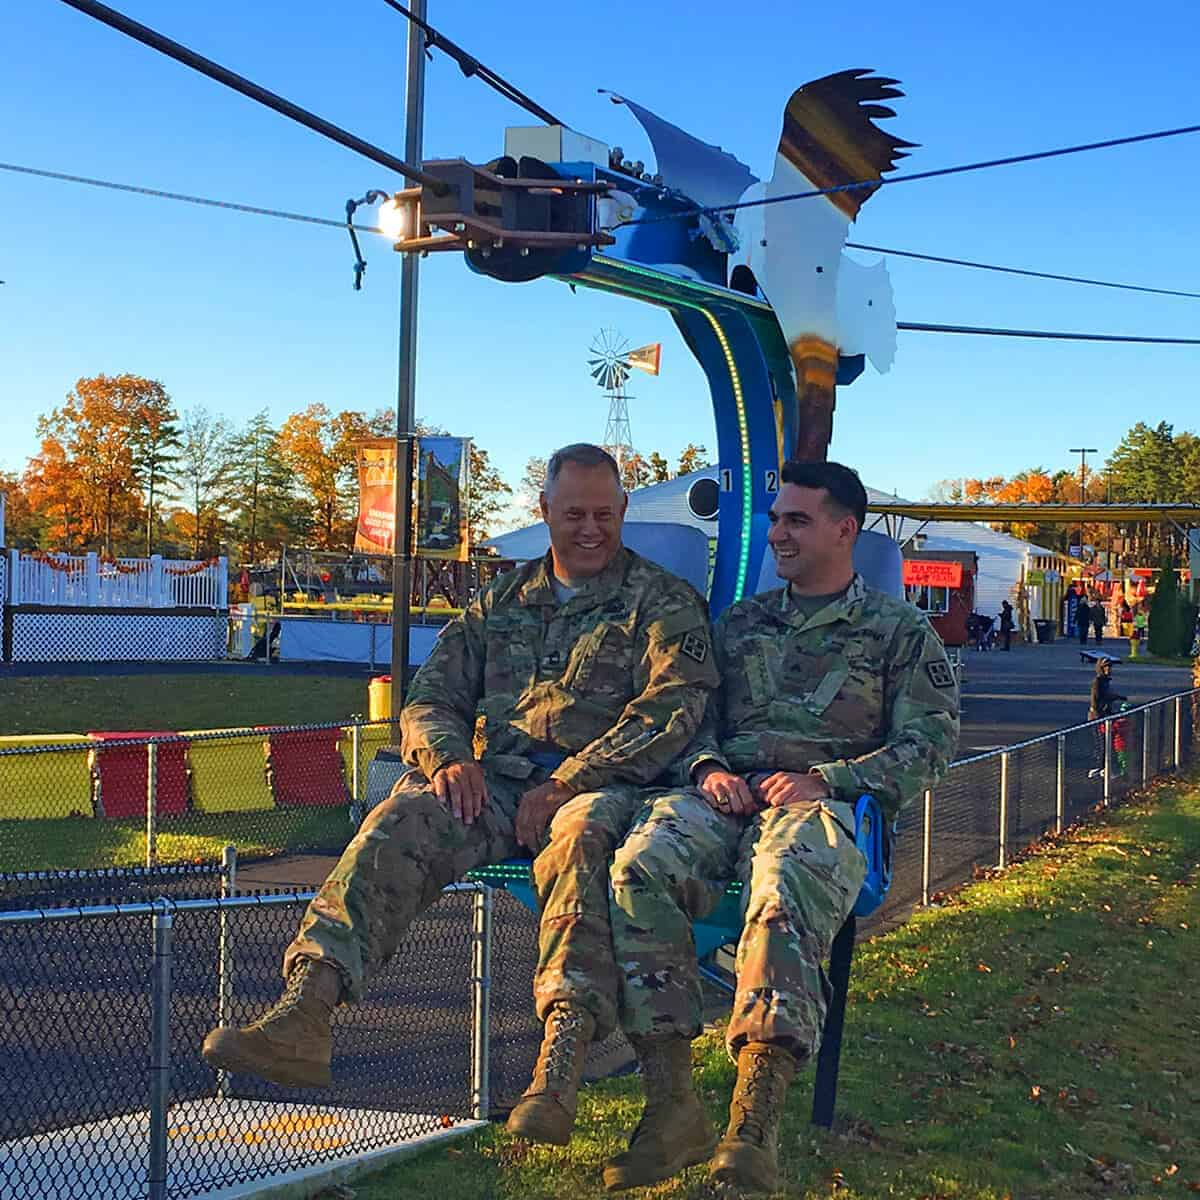 Two military personnel riding the Soaring Eagle zip line